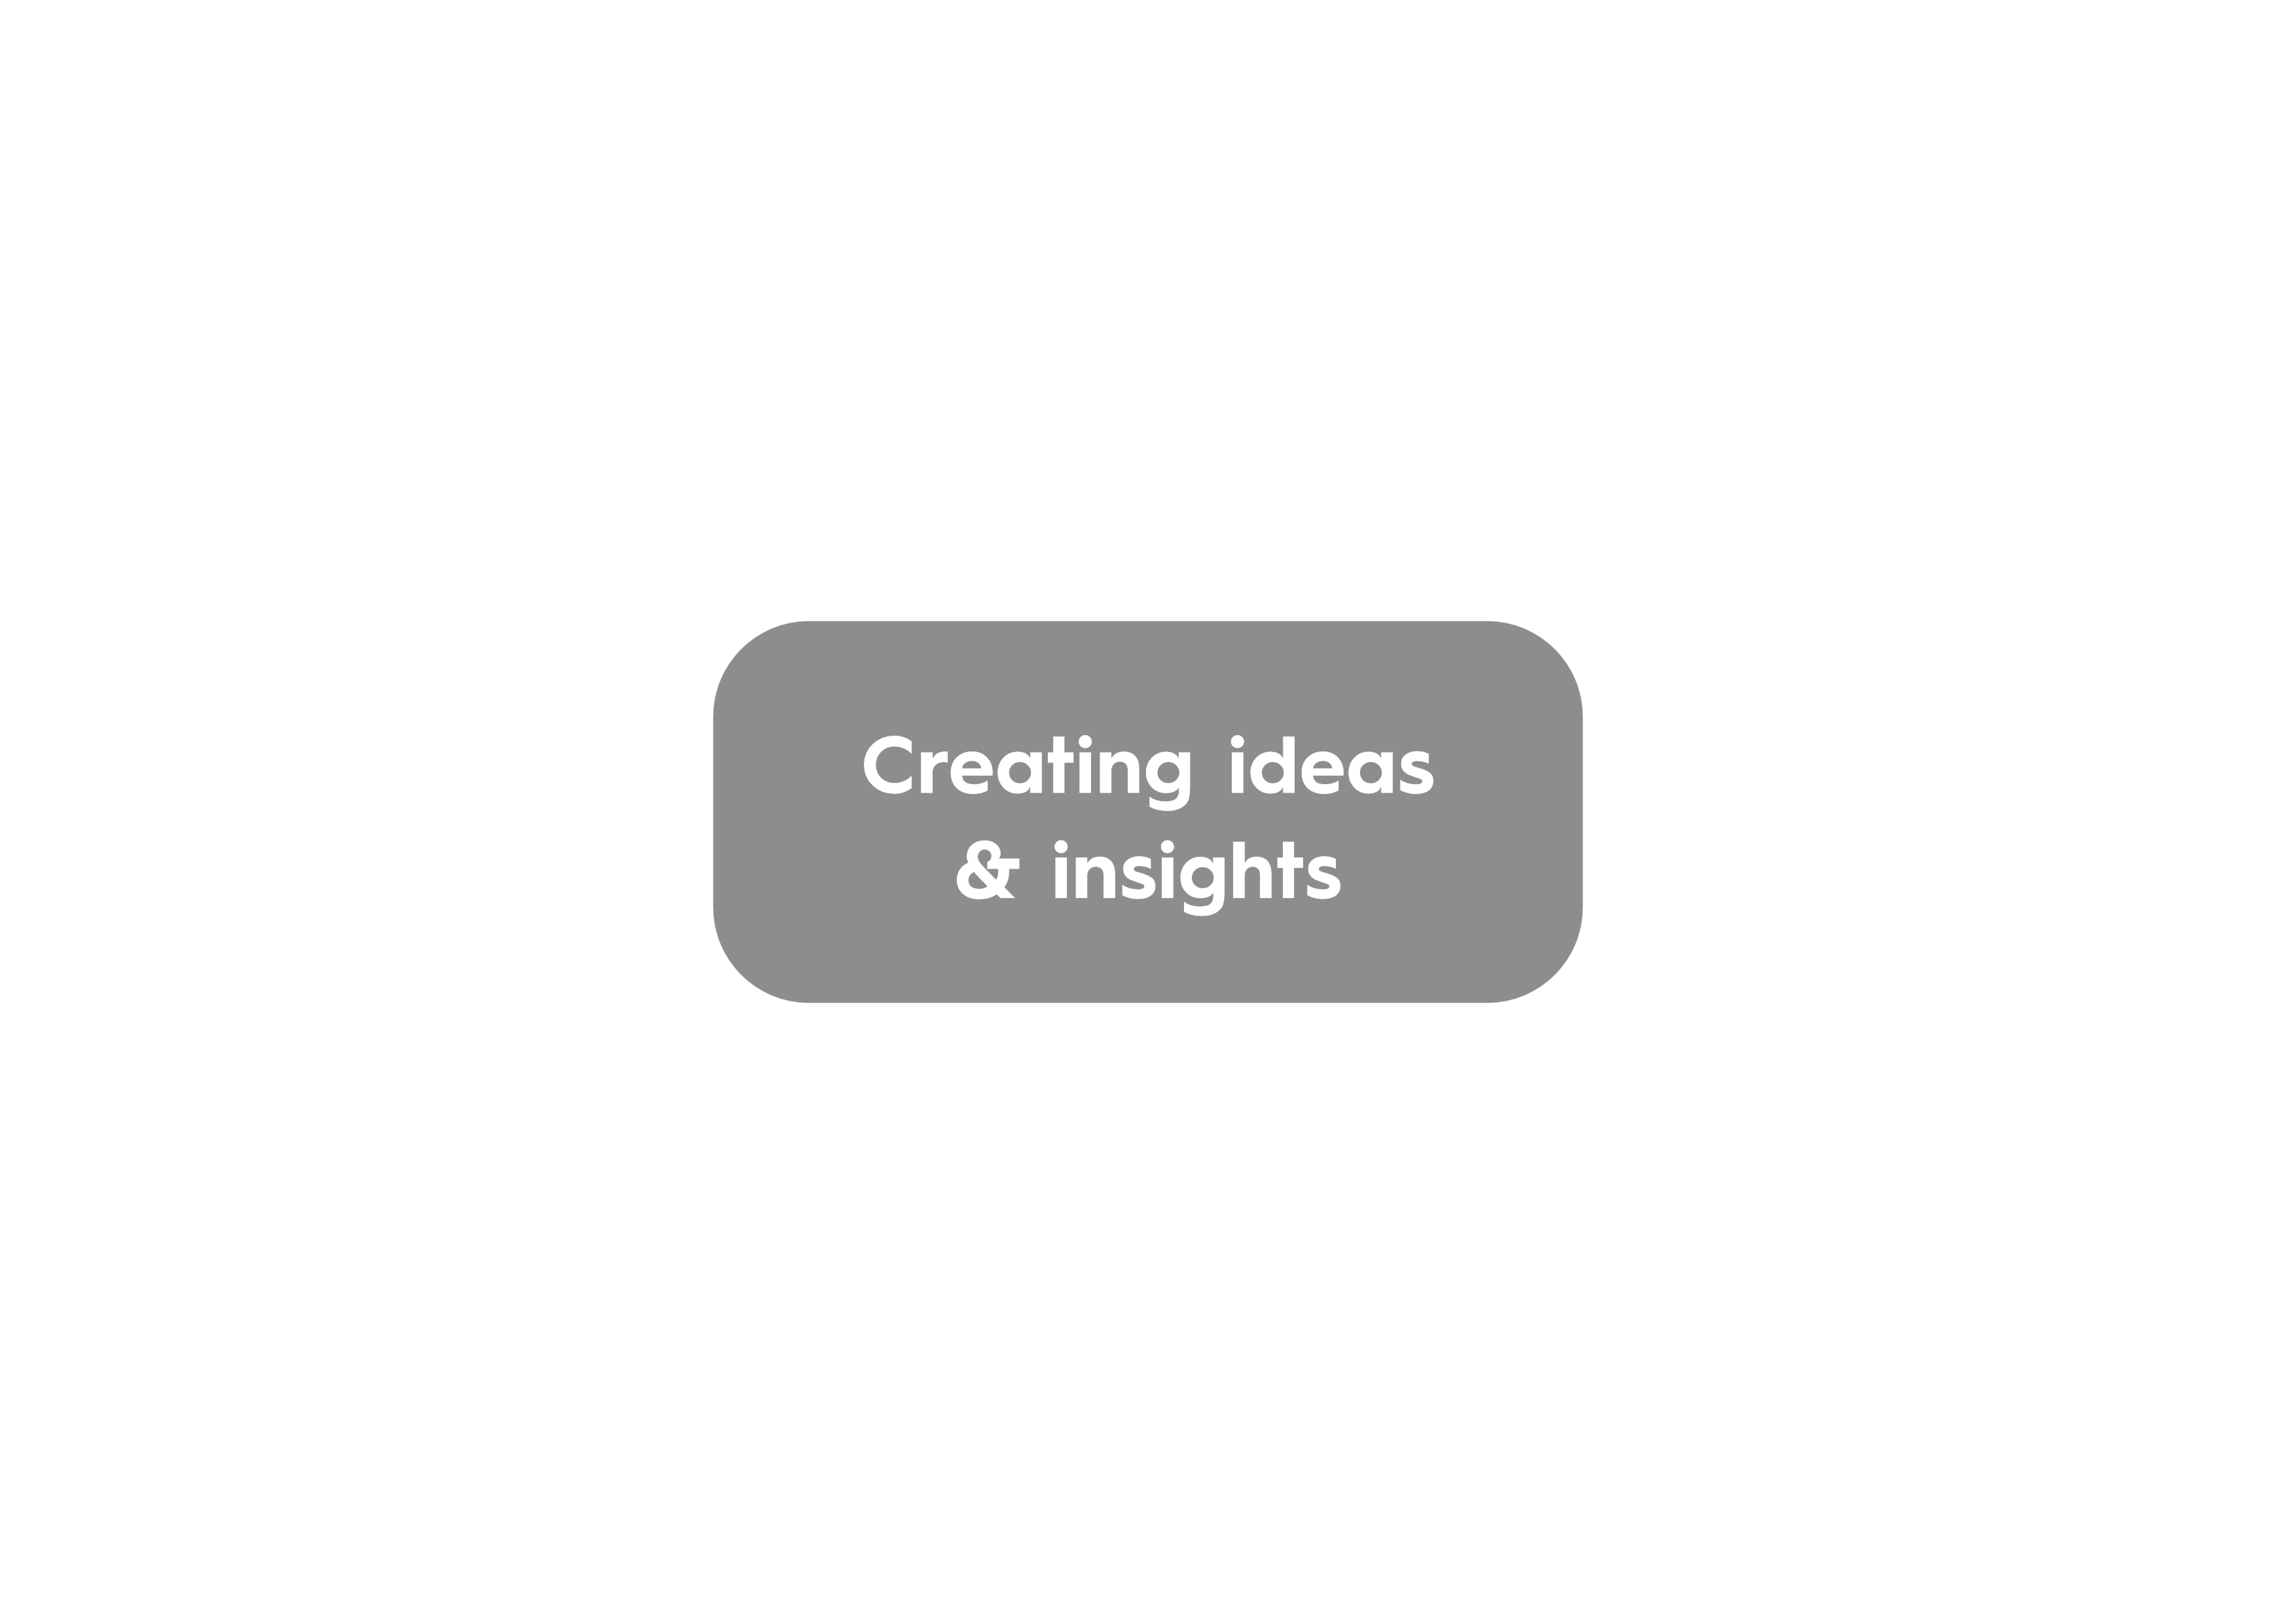 Creating ideas and insights_eden